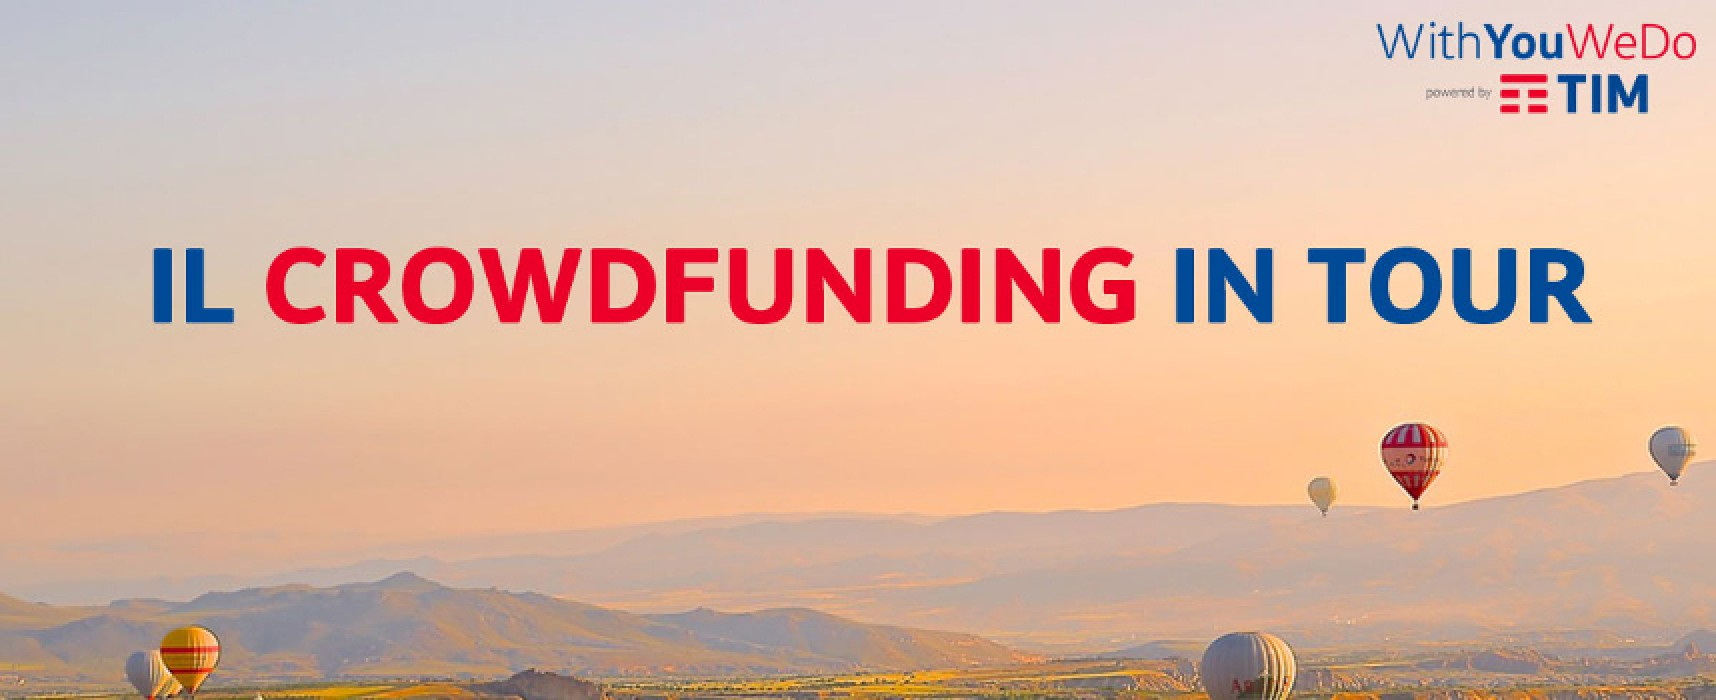 """With you we do"", Tim presenta le opportunità del crowdfunding a Bisceglie"